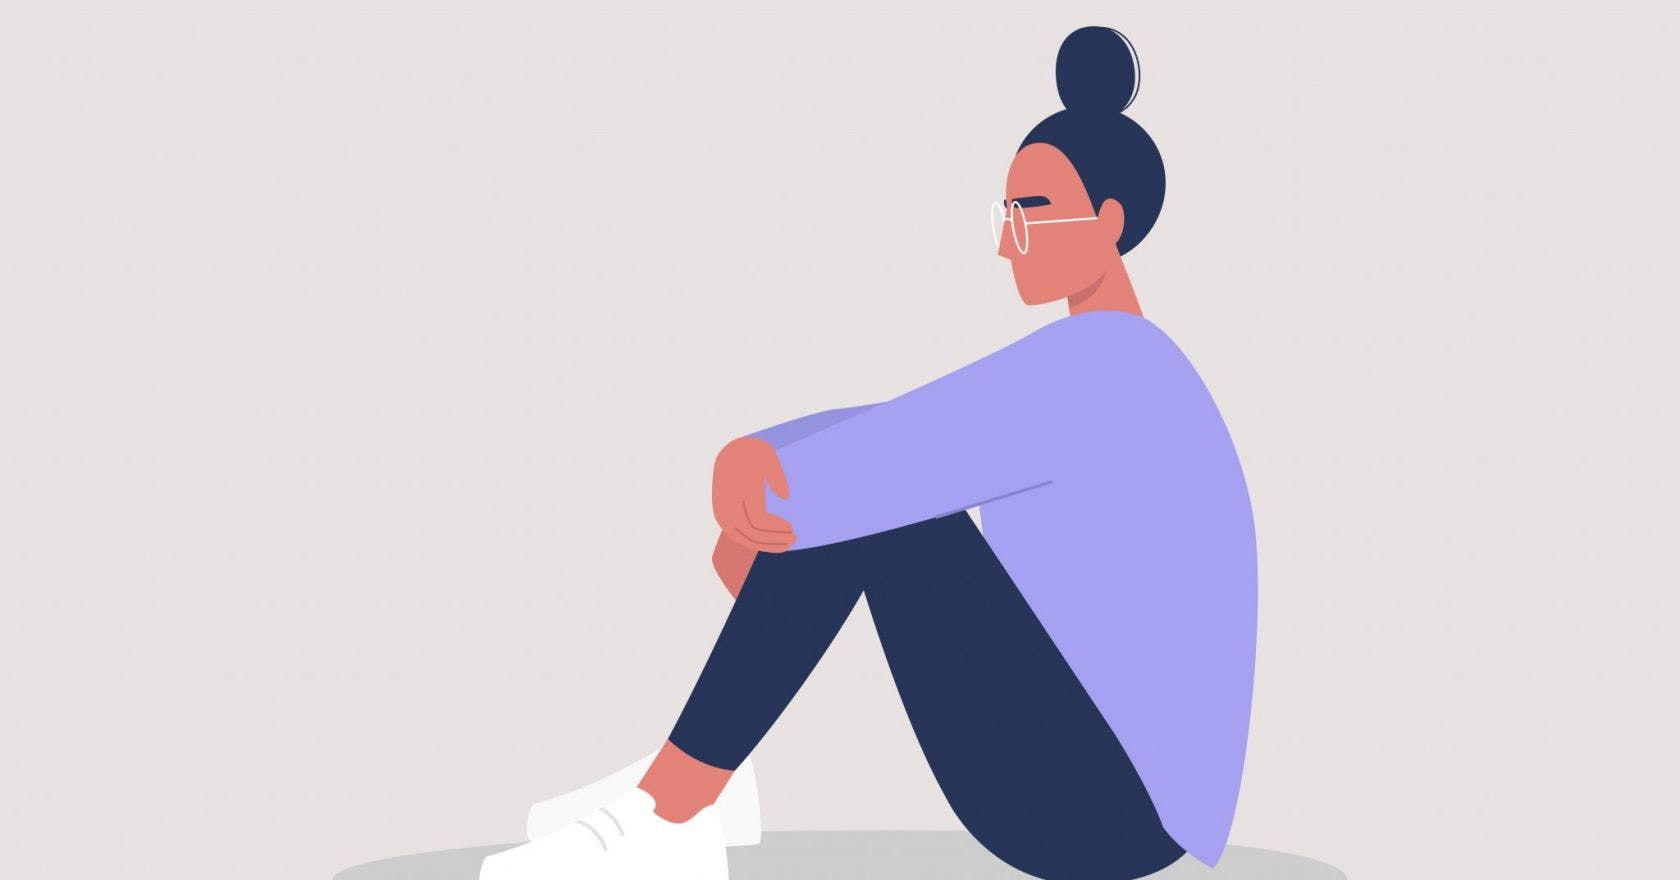 What it feels like to have your mental health issues dismissed